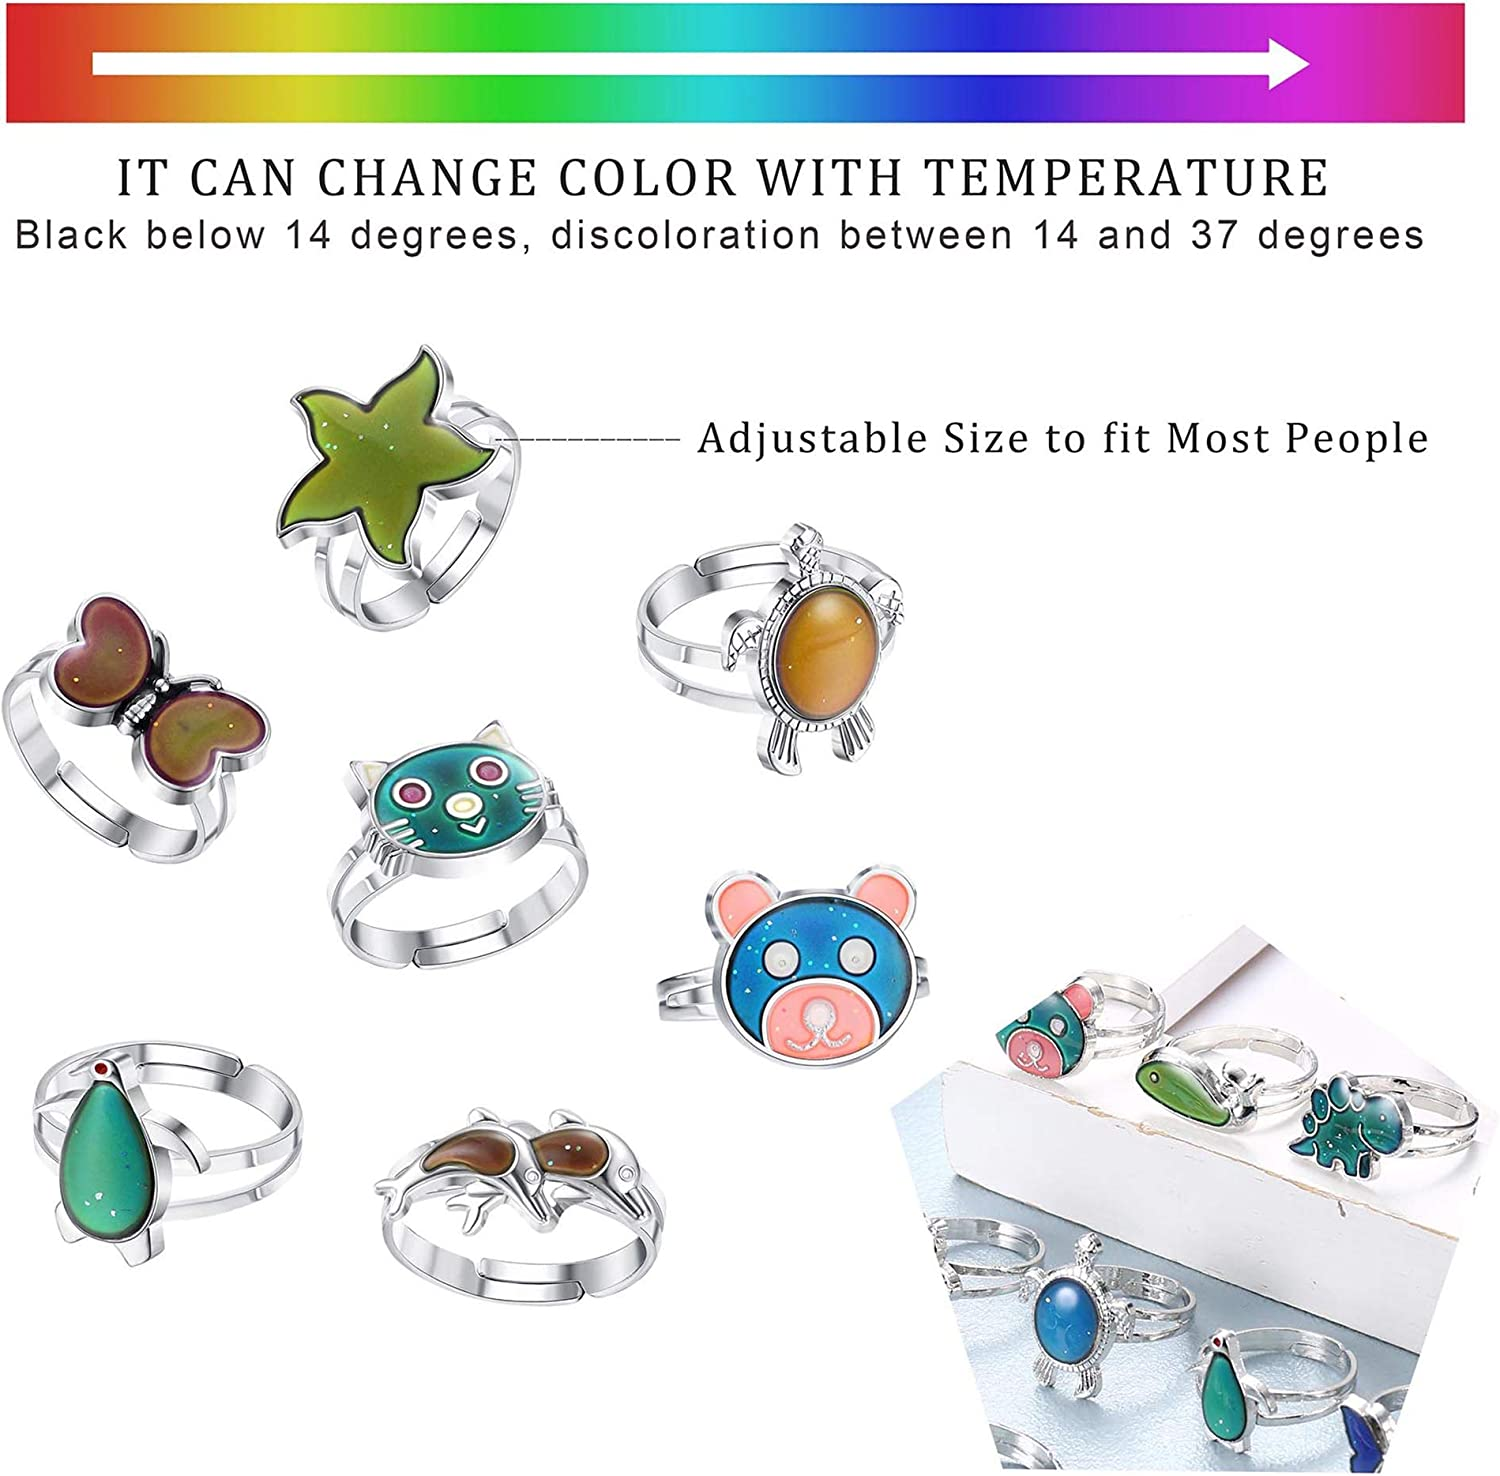 Subiceto 12 Pcs Adjustable Mood Ring for Women Mixed Animal Color Changing Rings Party Favor Costume Play Feeling Change Ring Set